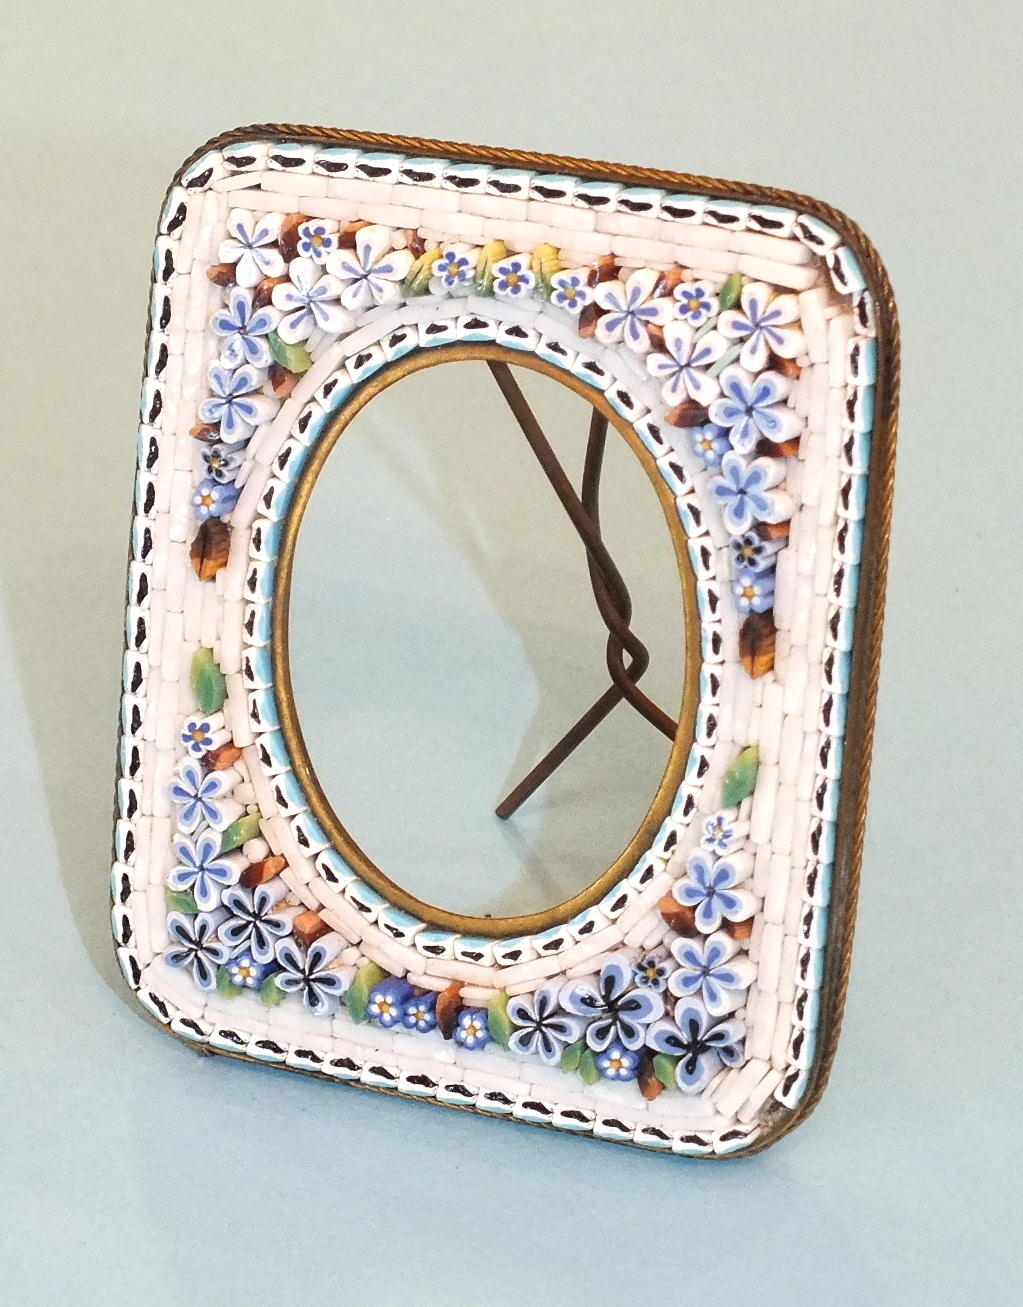 Lot 189 - A miniature glass mosaic picture frame decorated with blue and white flowers around an oval